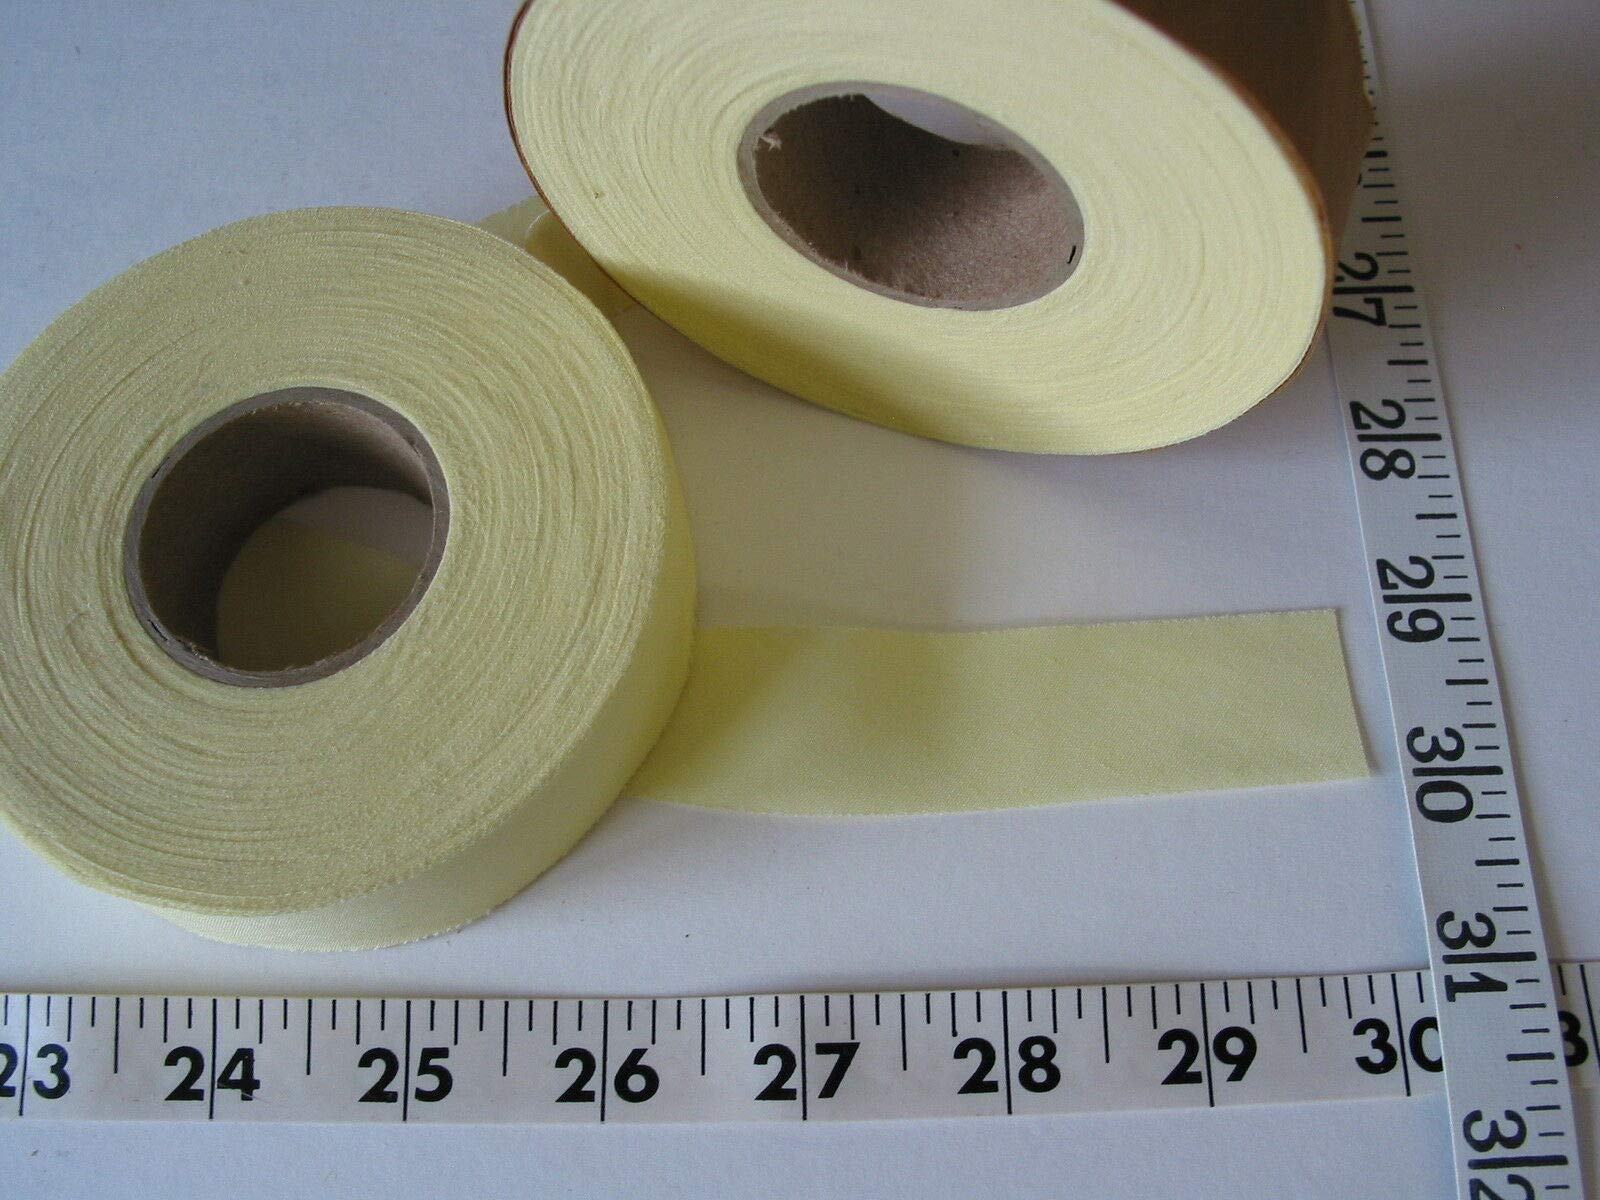 Sewing Craft DIY - Trim bias Binding Unfolded Yellow 1 w 2 Rolls - Trims Variety of Colors, Styles and Materials by B07Q58KFW1